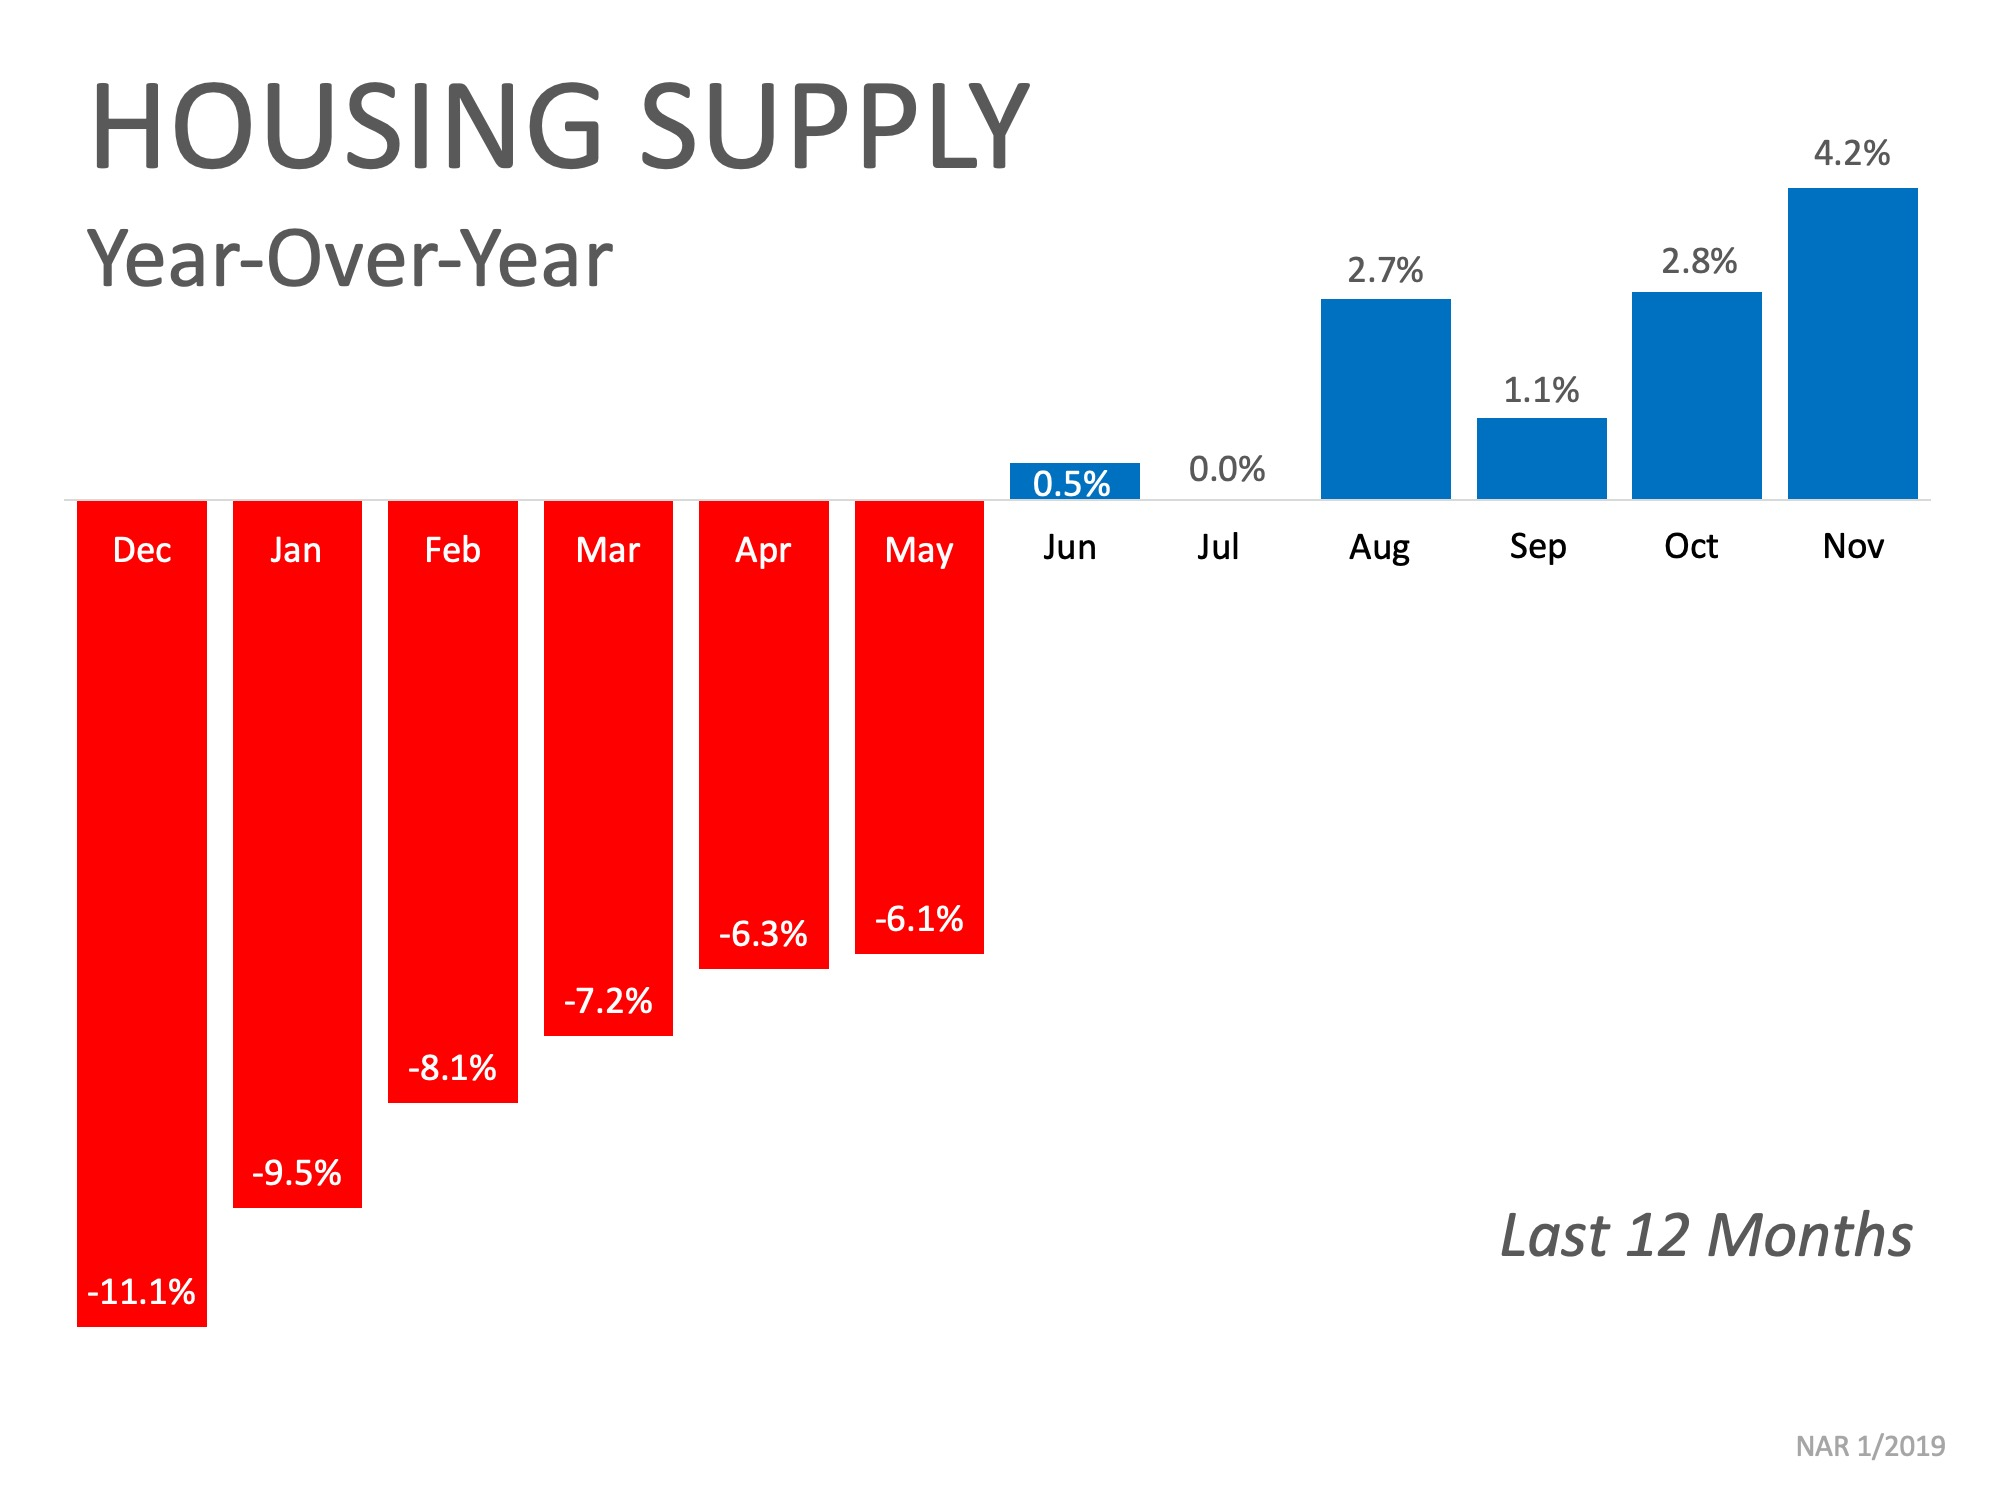 Housing Supply Graph from NAR 1/2019